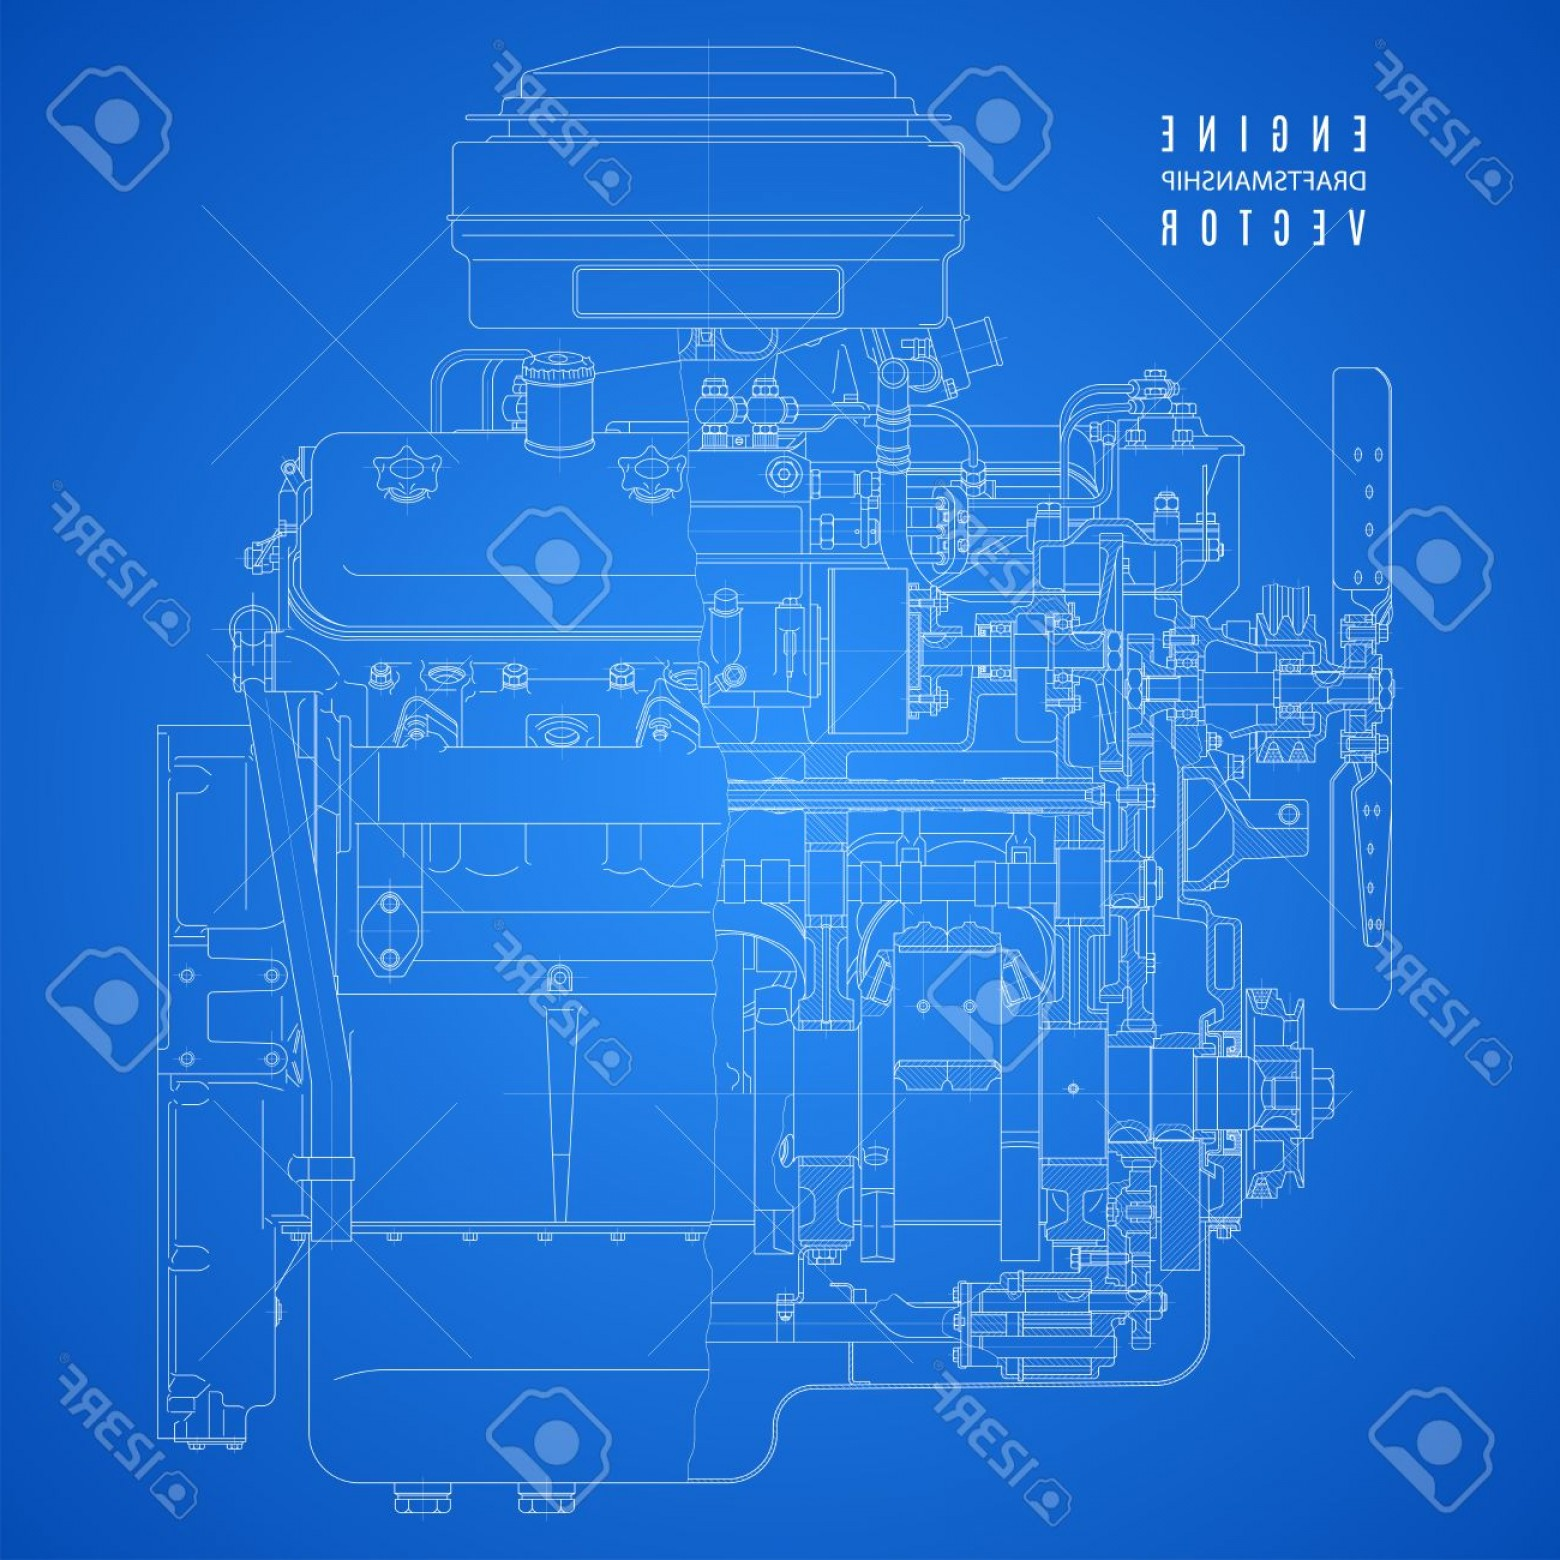 Photostock vector blueprint engine project technical drawing on the blue print vectors photostock vector blueprint engine project technical drawing on the blue background malvernweather Gallery